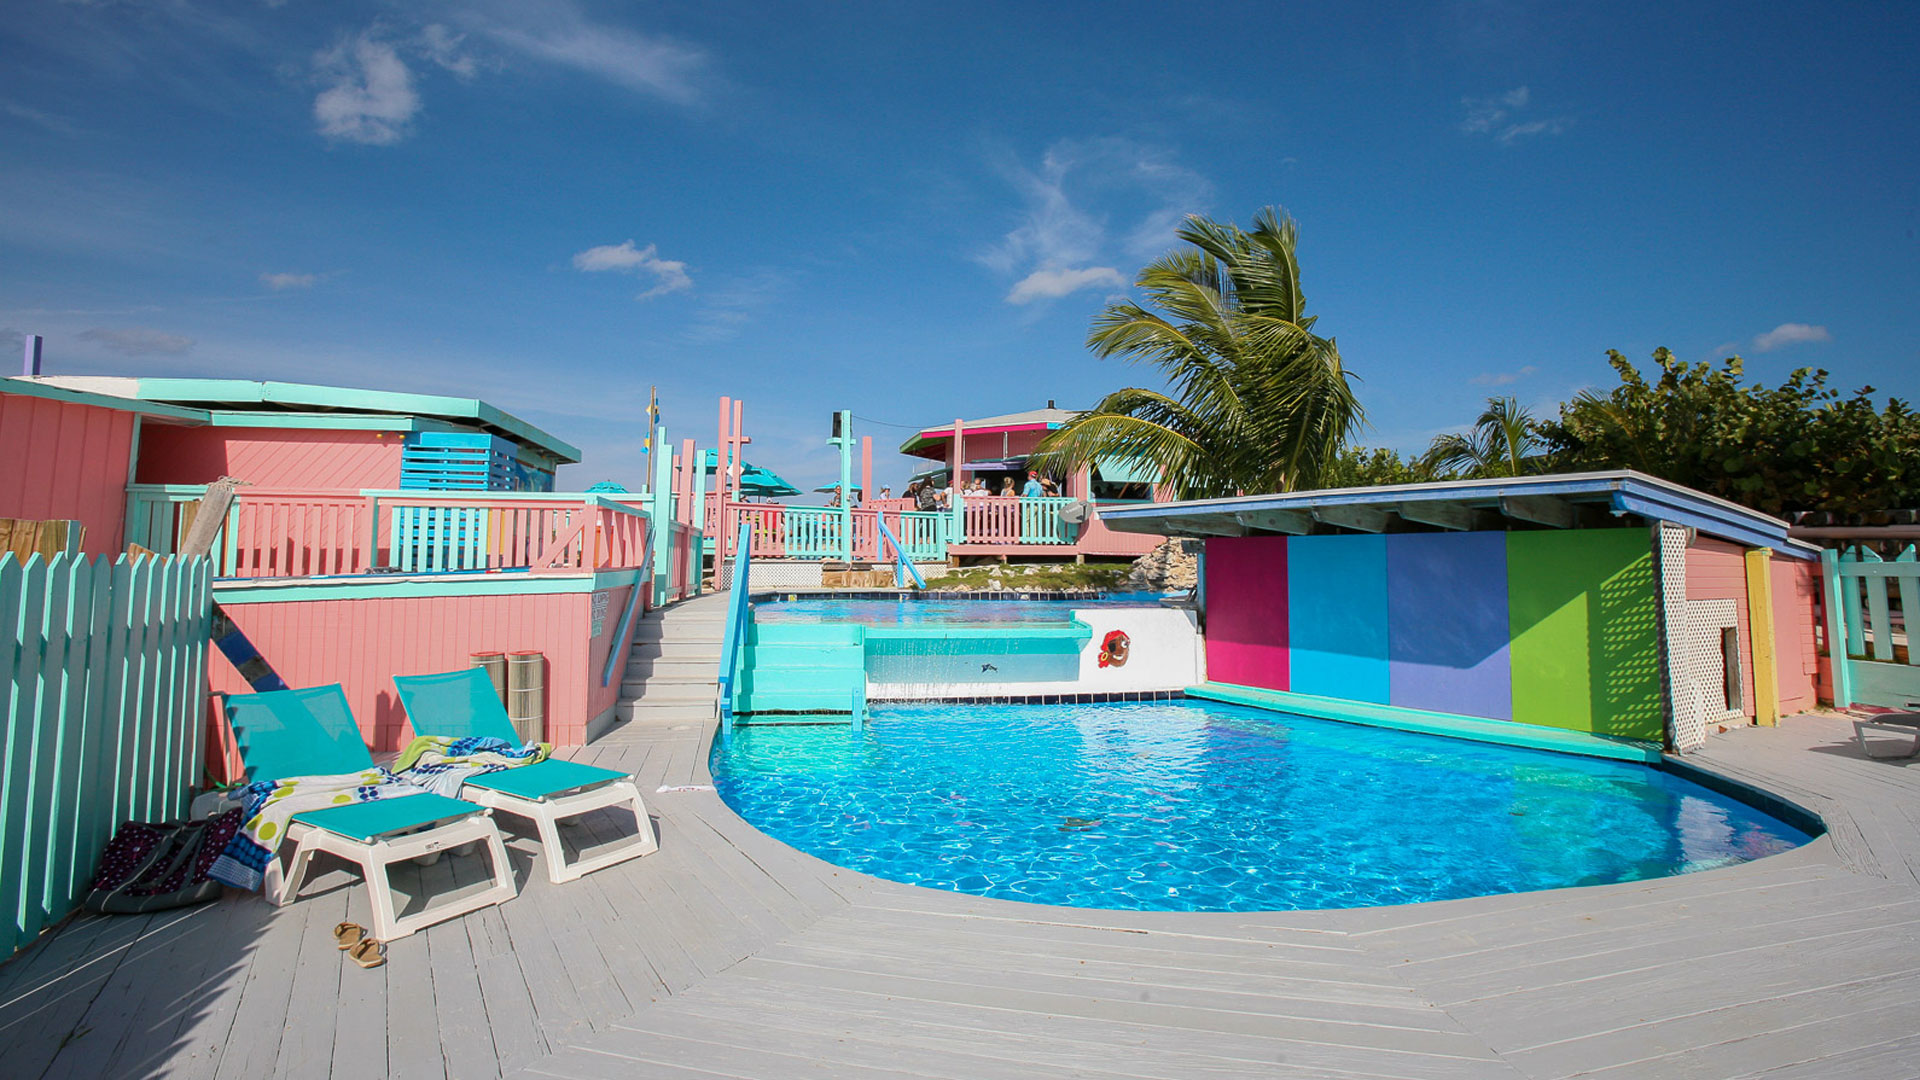 Nipper's Beach bar on Guana Cay - View to the beach